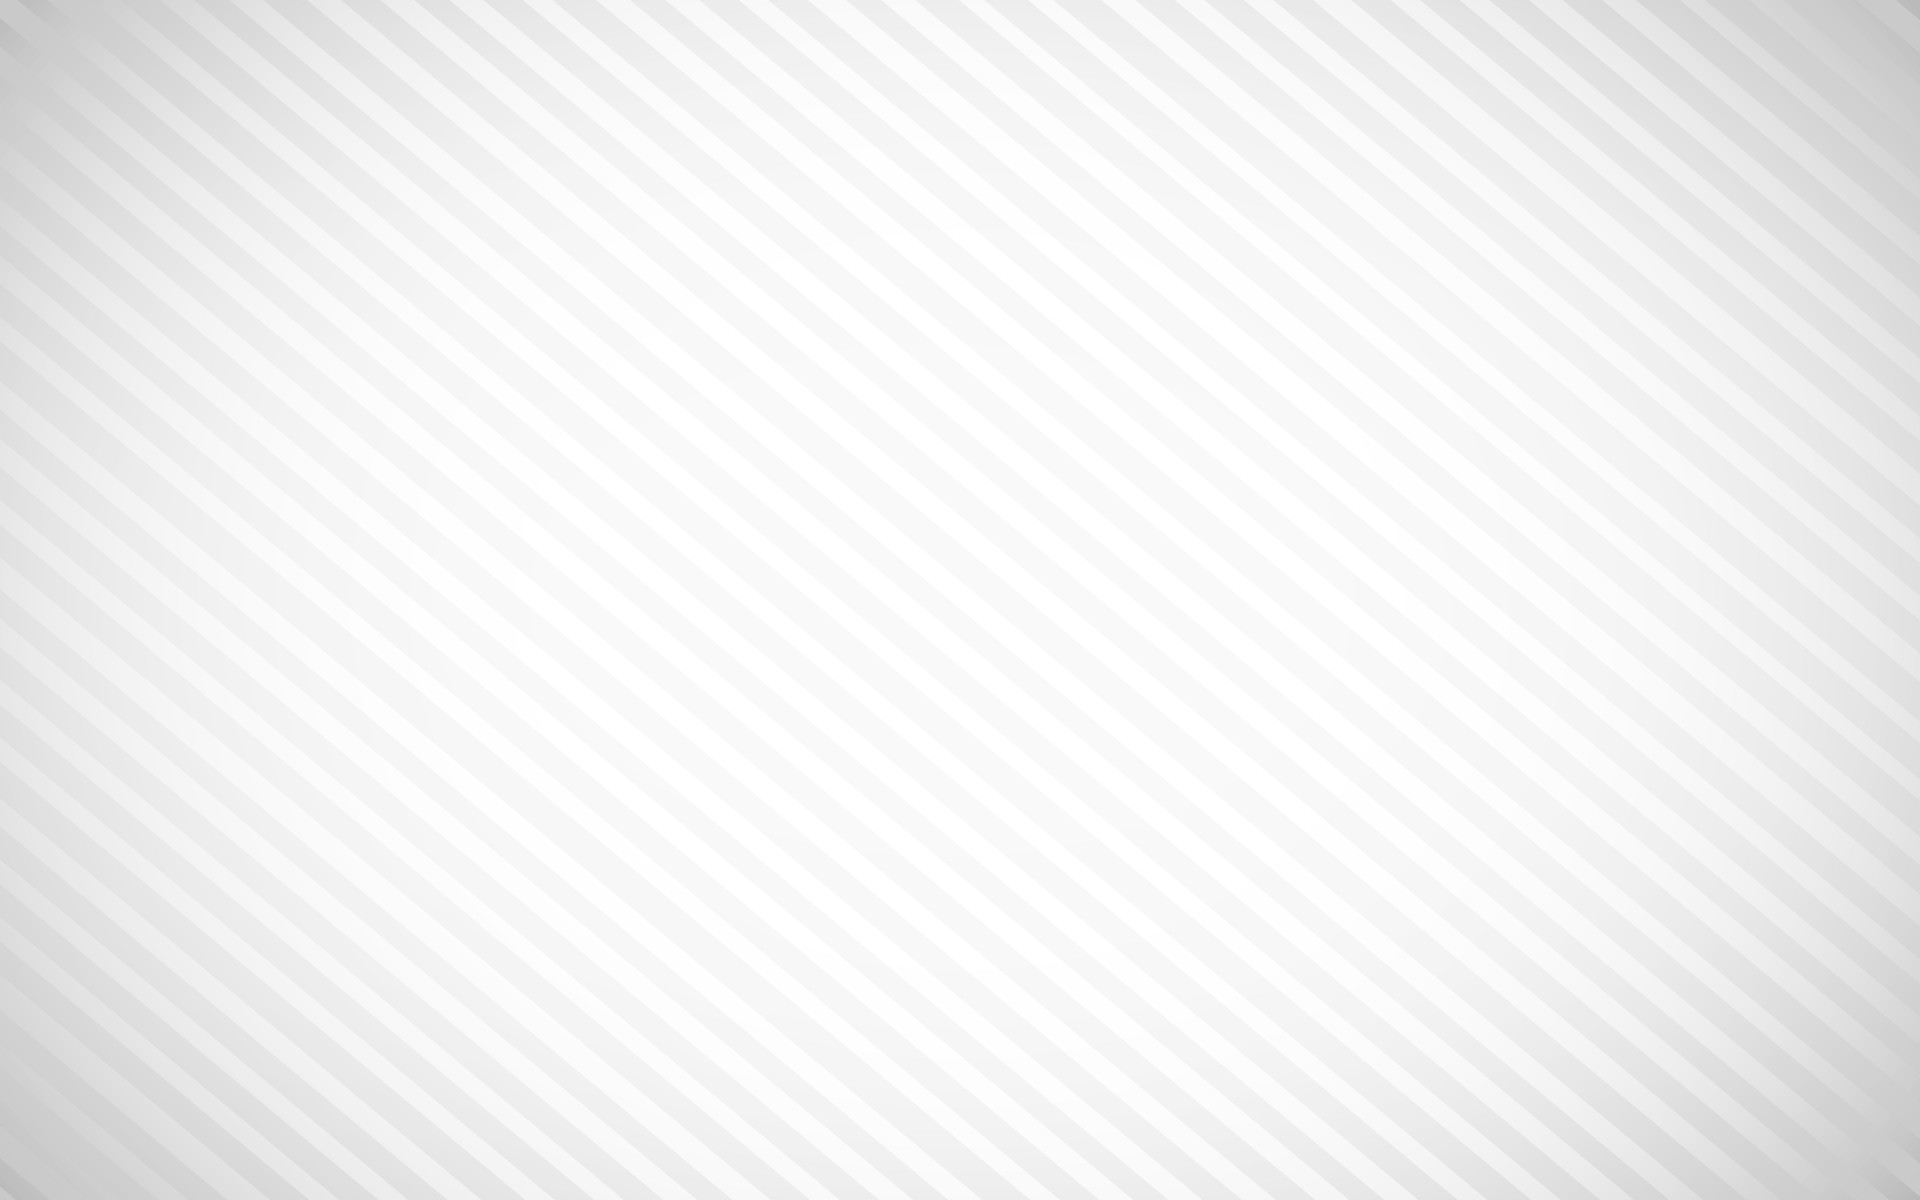 White texture background download free awesome hd for Free white texture